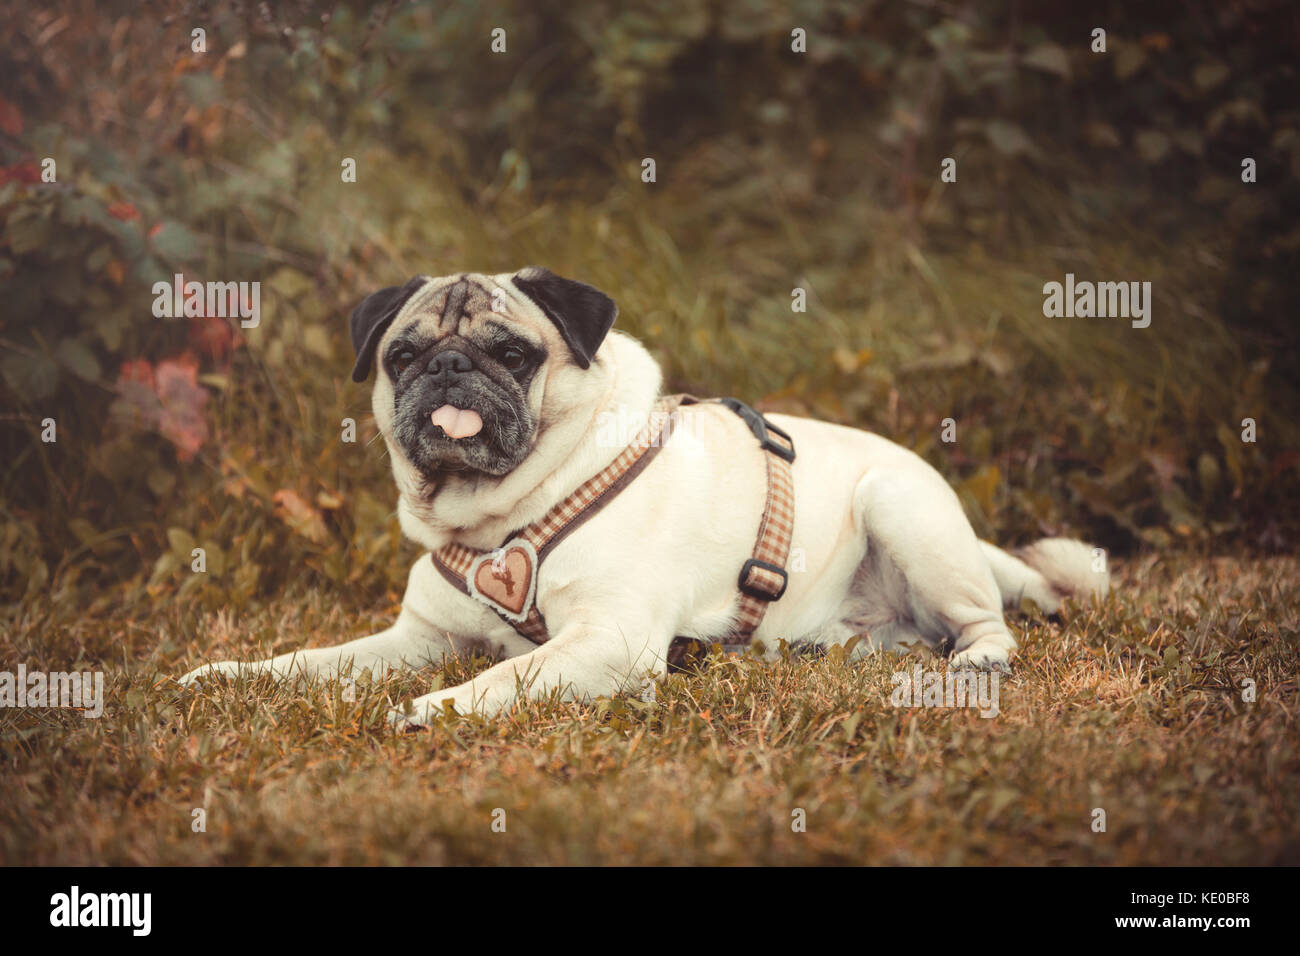 Portrait of a Pug dog outdoors in autumnal landscape - Stock Image